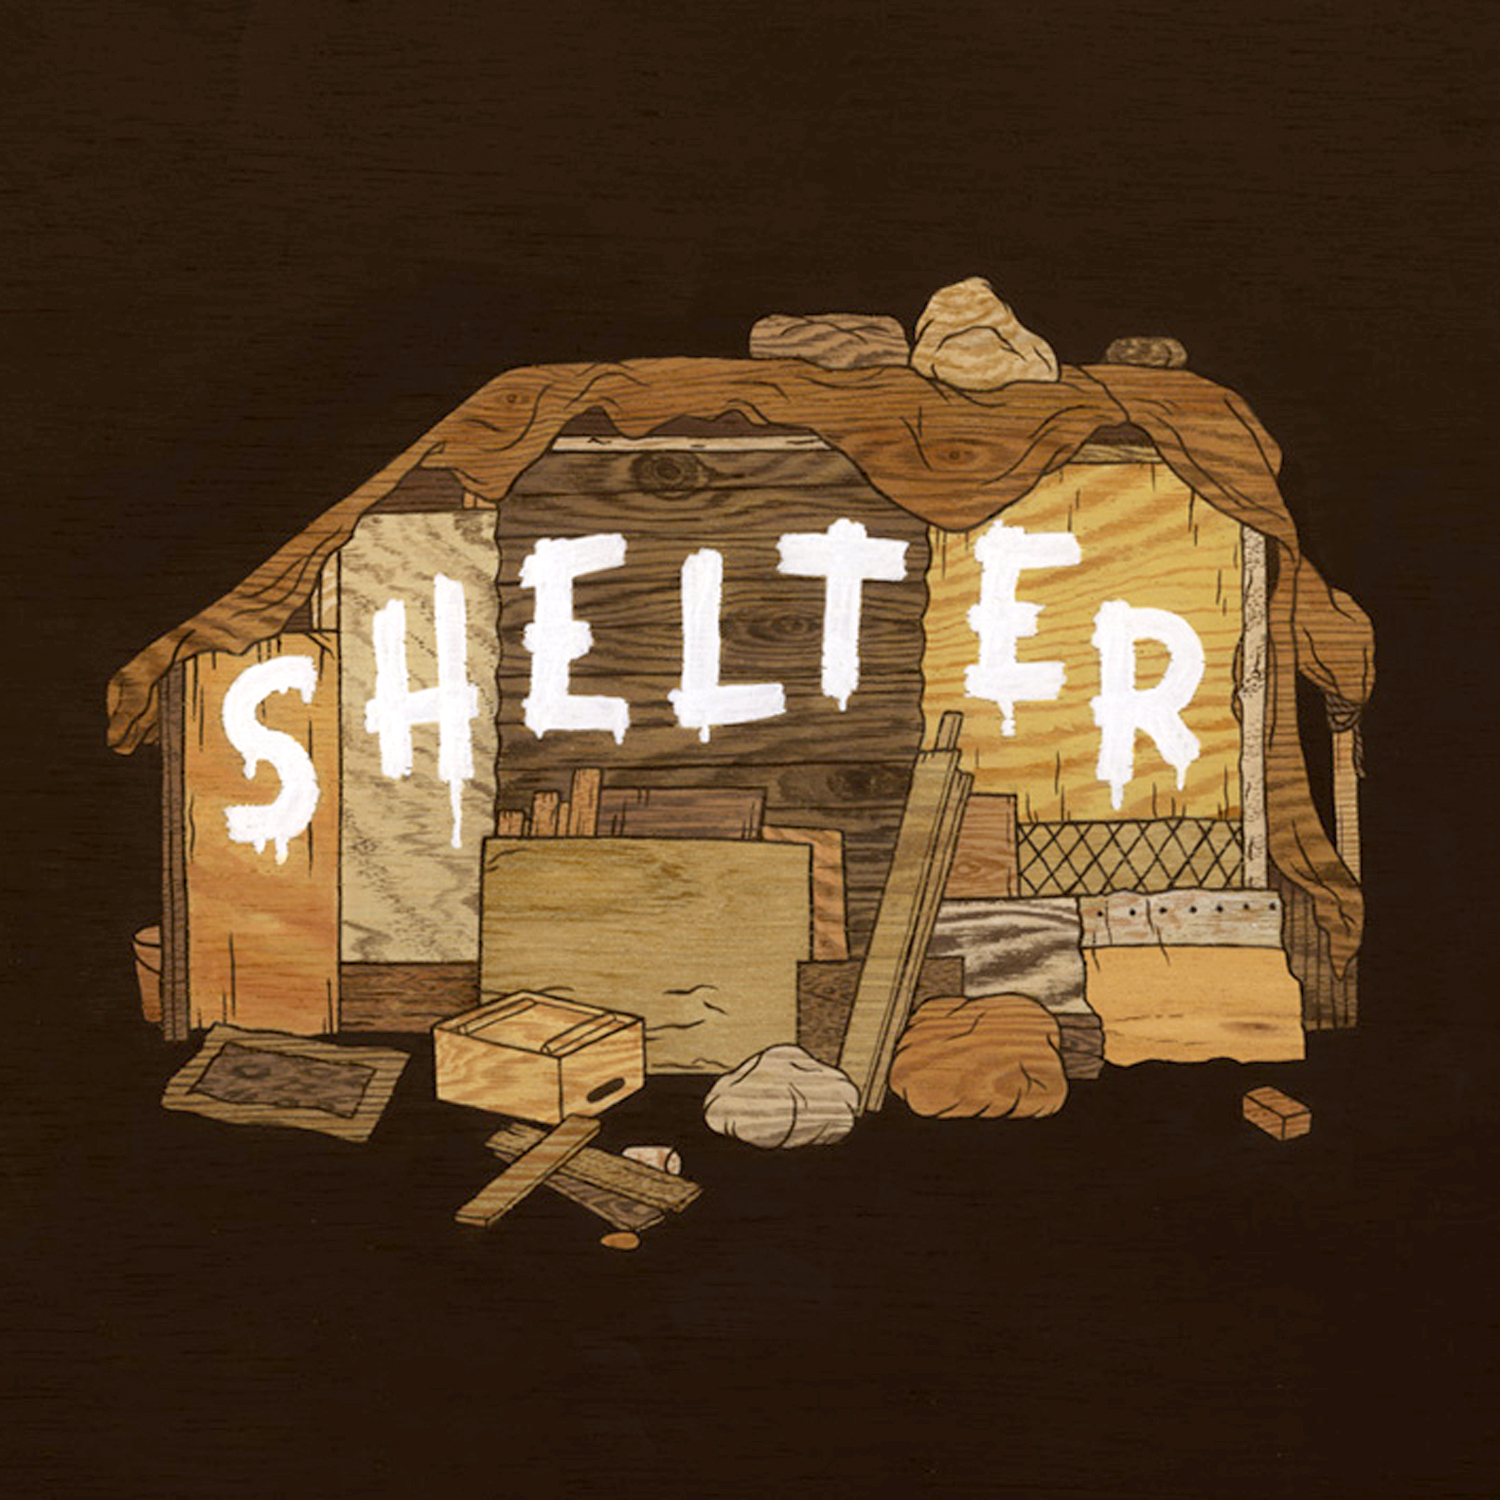 Painting from moki's 2017 publication Shelter